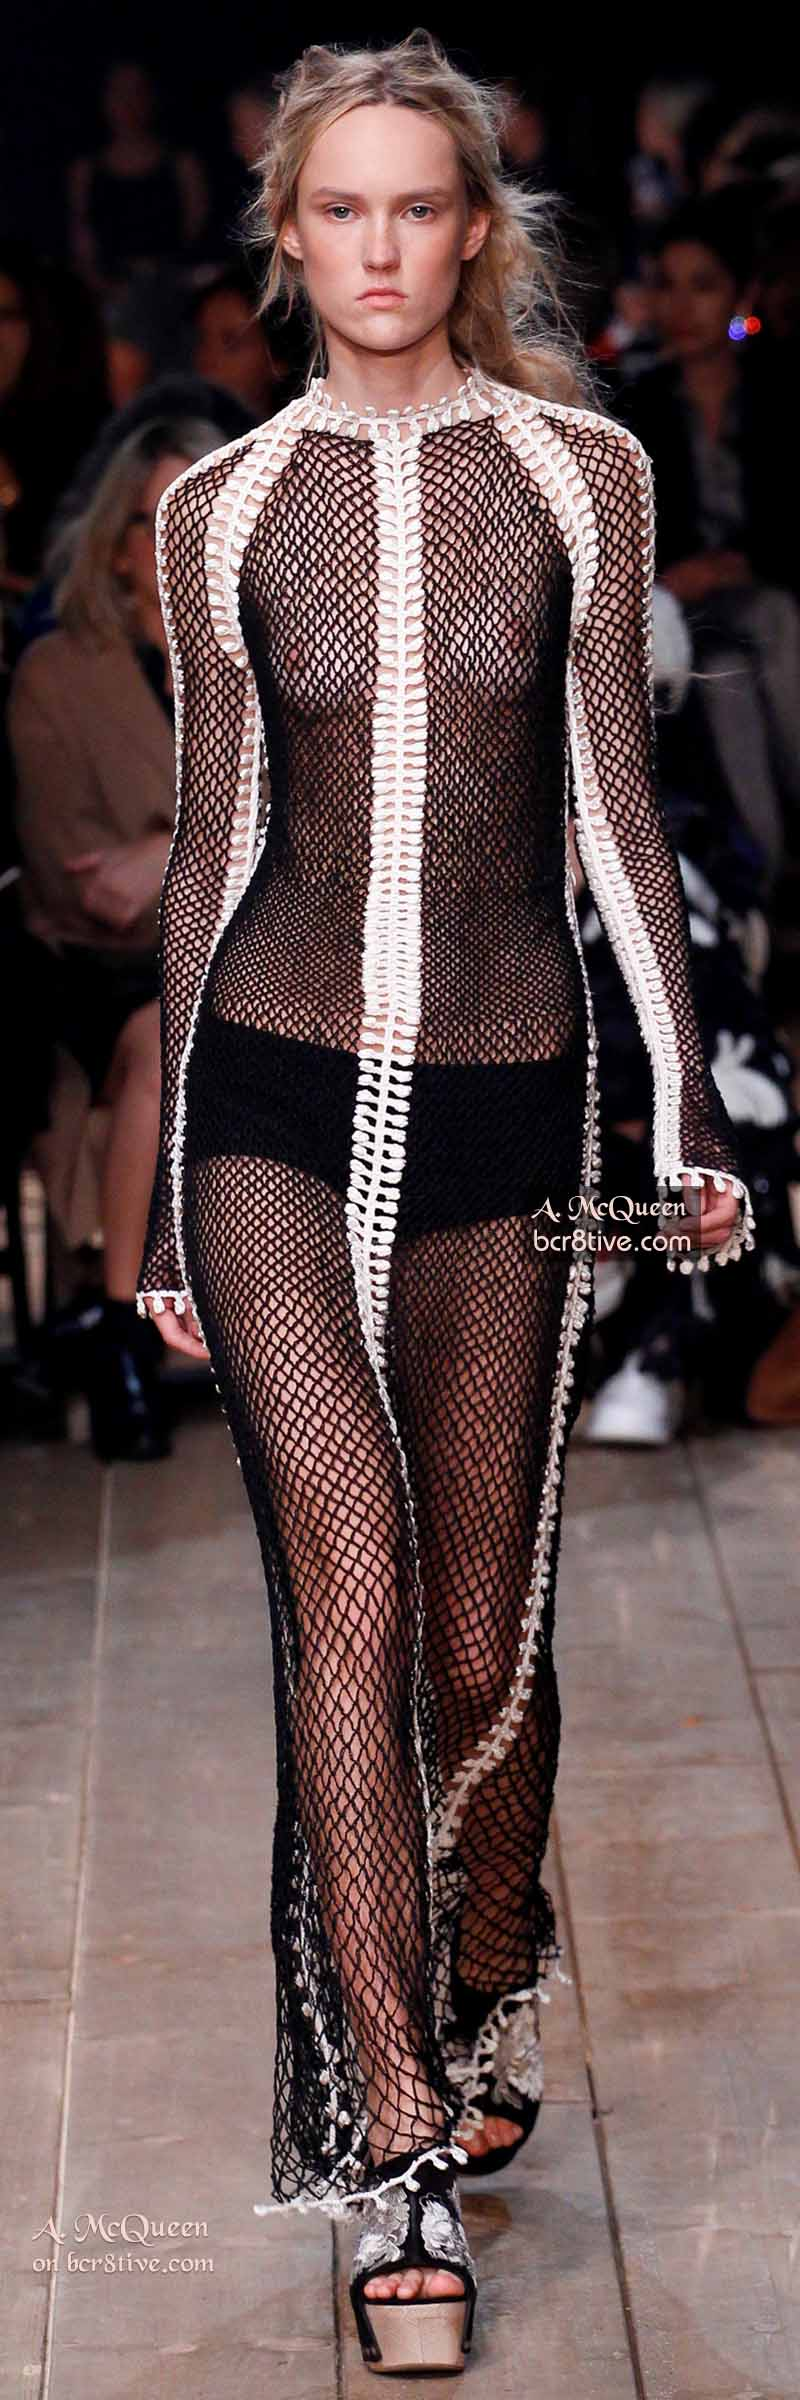 Mesh Gown - The Best of Alexander McQueen 2016